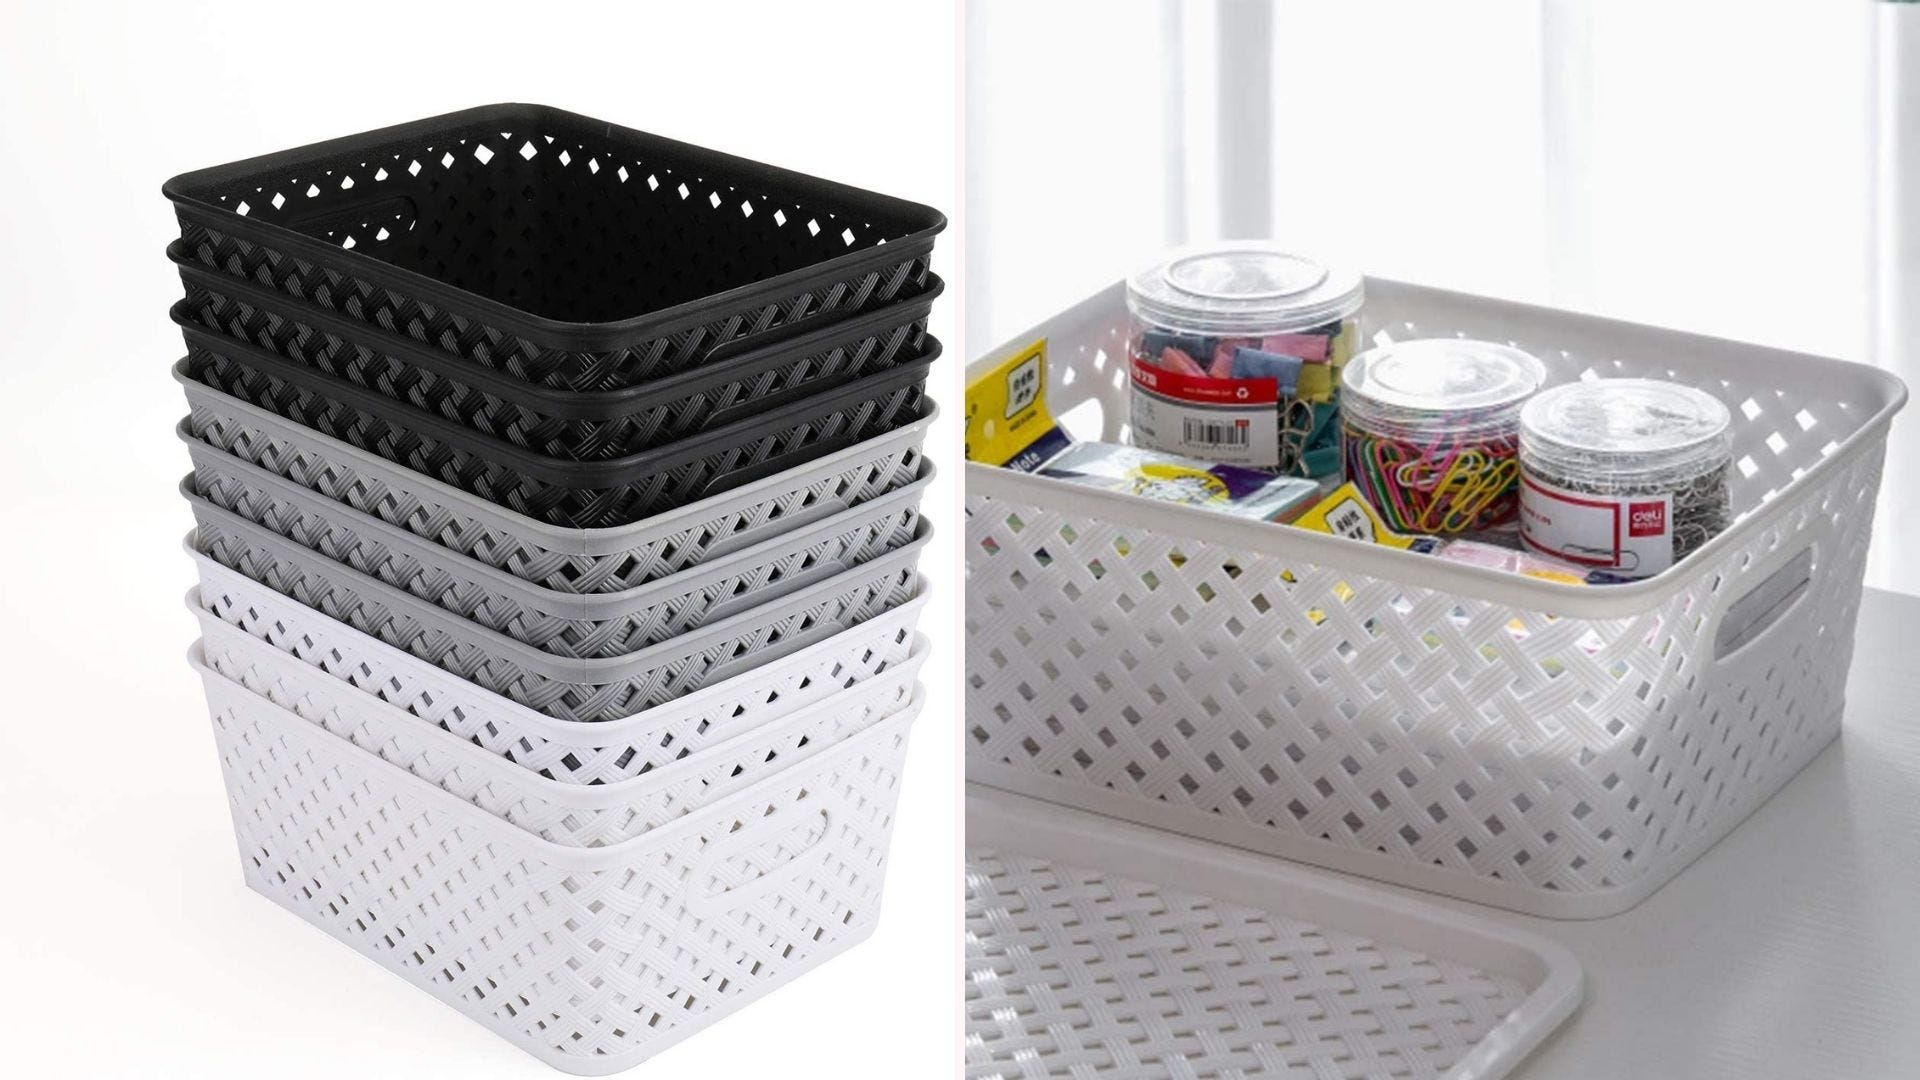 Plastic storage baskets in gray, white, and black.